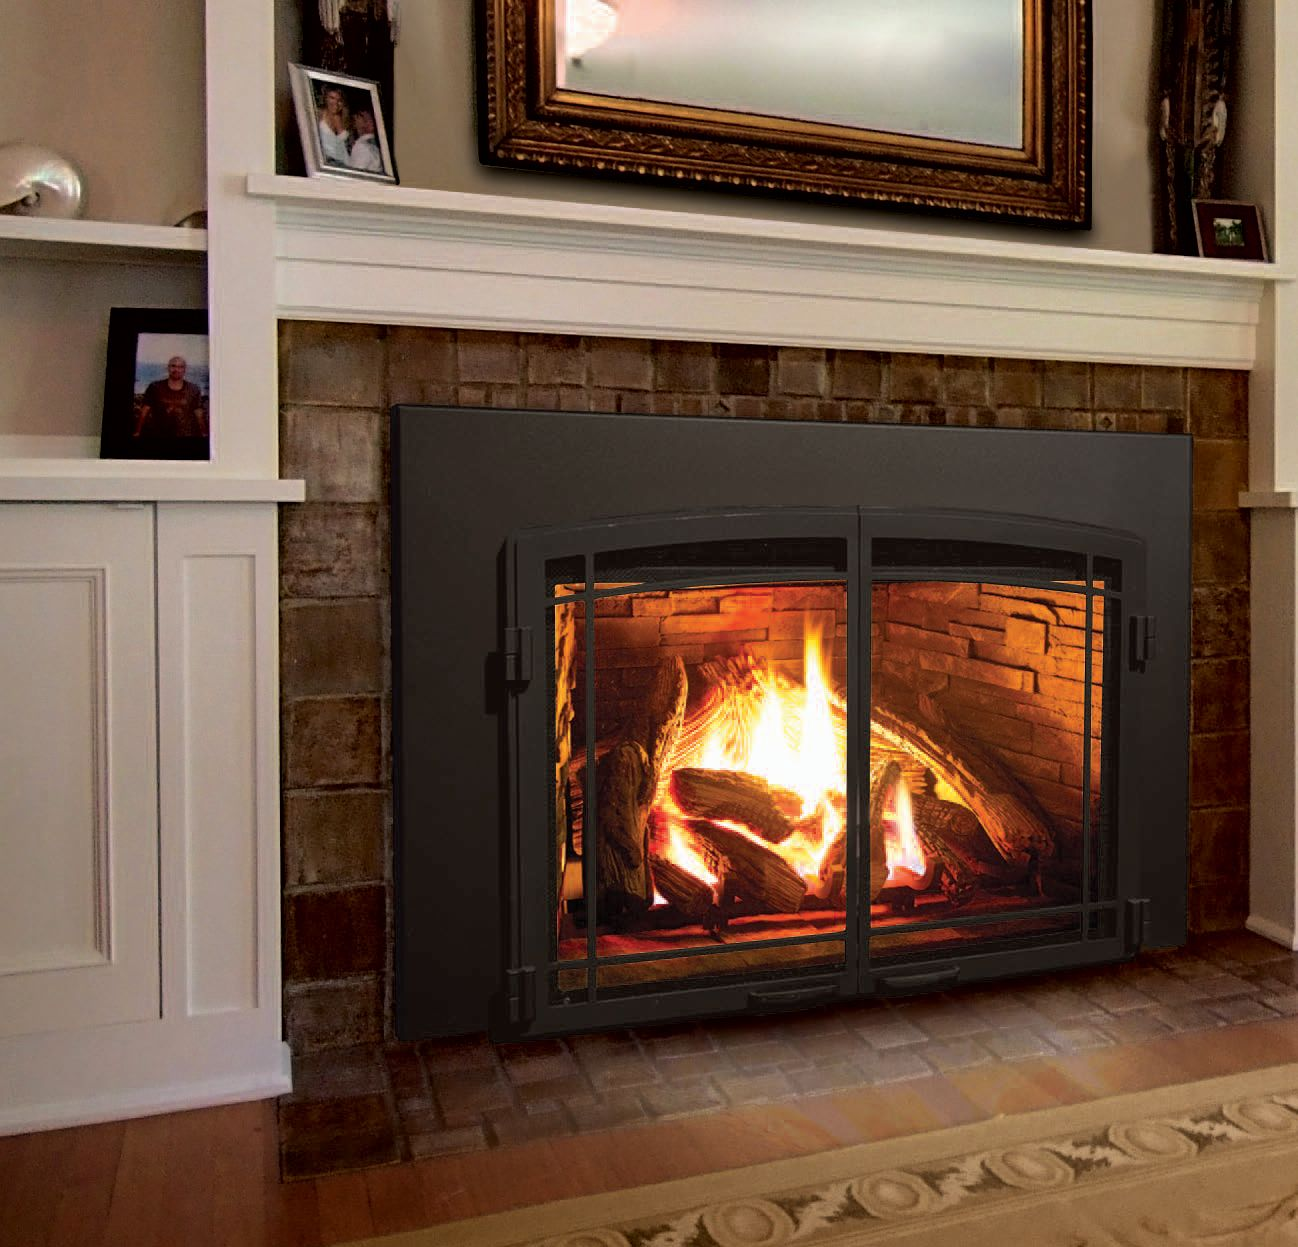 The Enviro E44 Gas Fireplace Insert